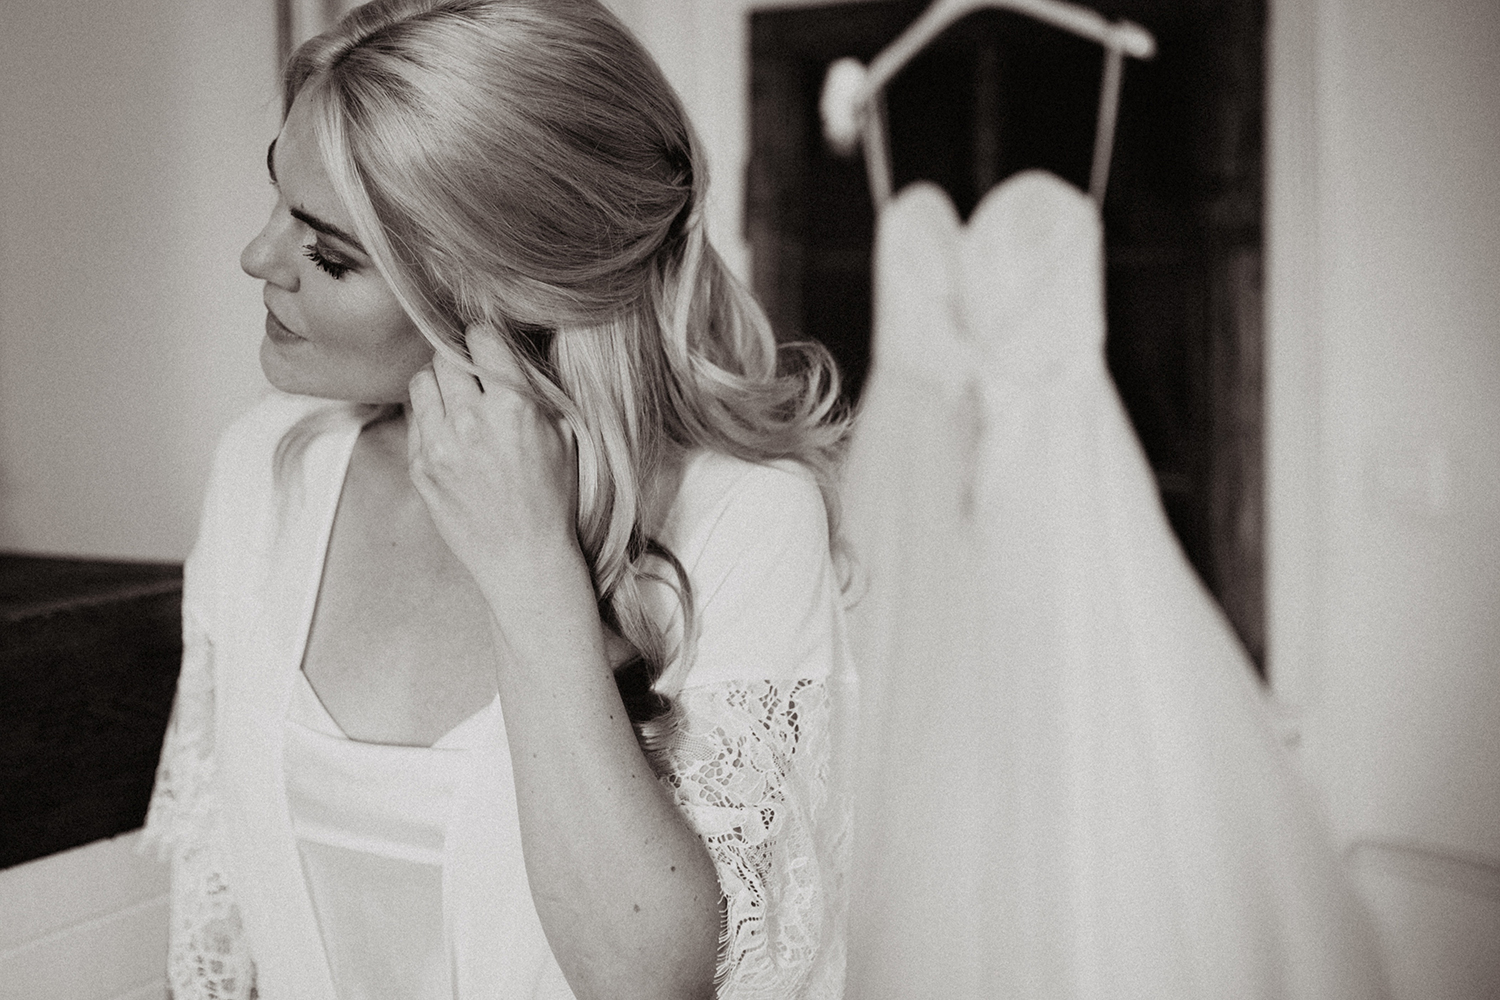 designer wedding gowns by Caroline Castigliano